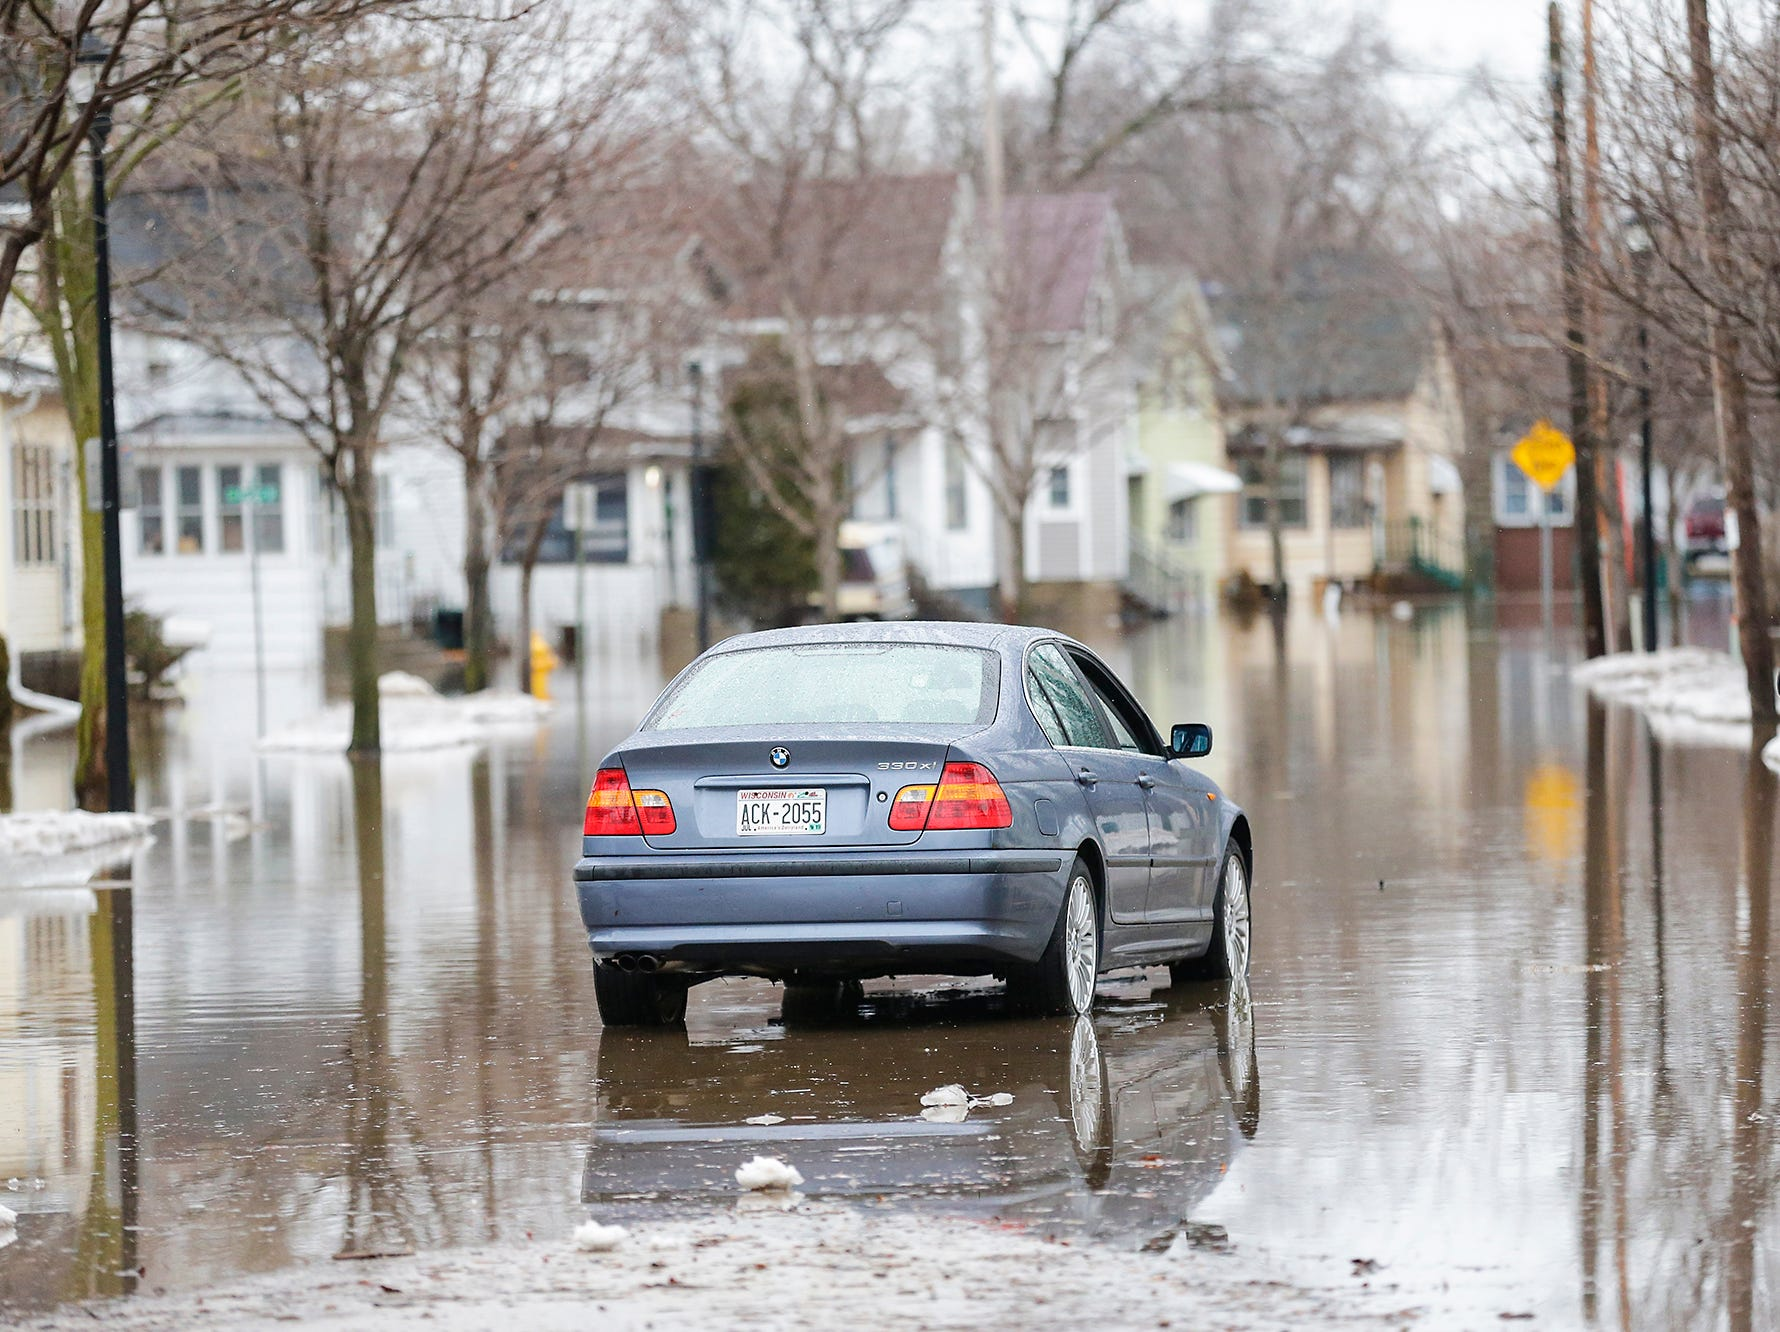 Flooding remains a problem Friday, March 15, 2019 in the 100 block of north Lincoln Street in Fond du Lac, Wis. Ice jams on the east branch of the Fond du Lac River and heavy rain caused widespread flooding problems in the city on Thursday the 14th. Doug Raflik/USA TODAY NETWORK-Wisconsin